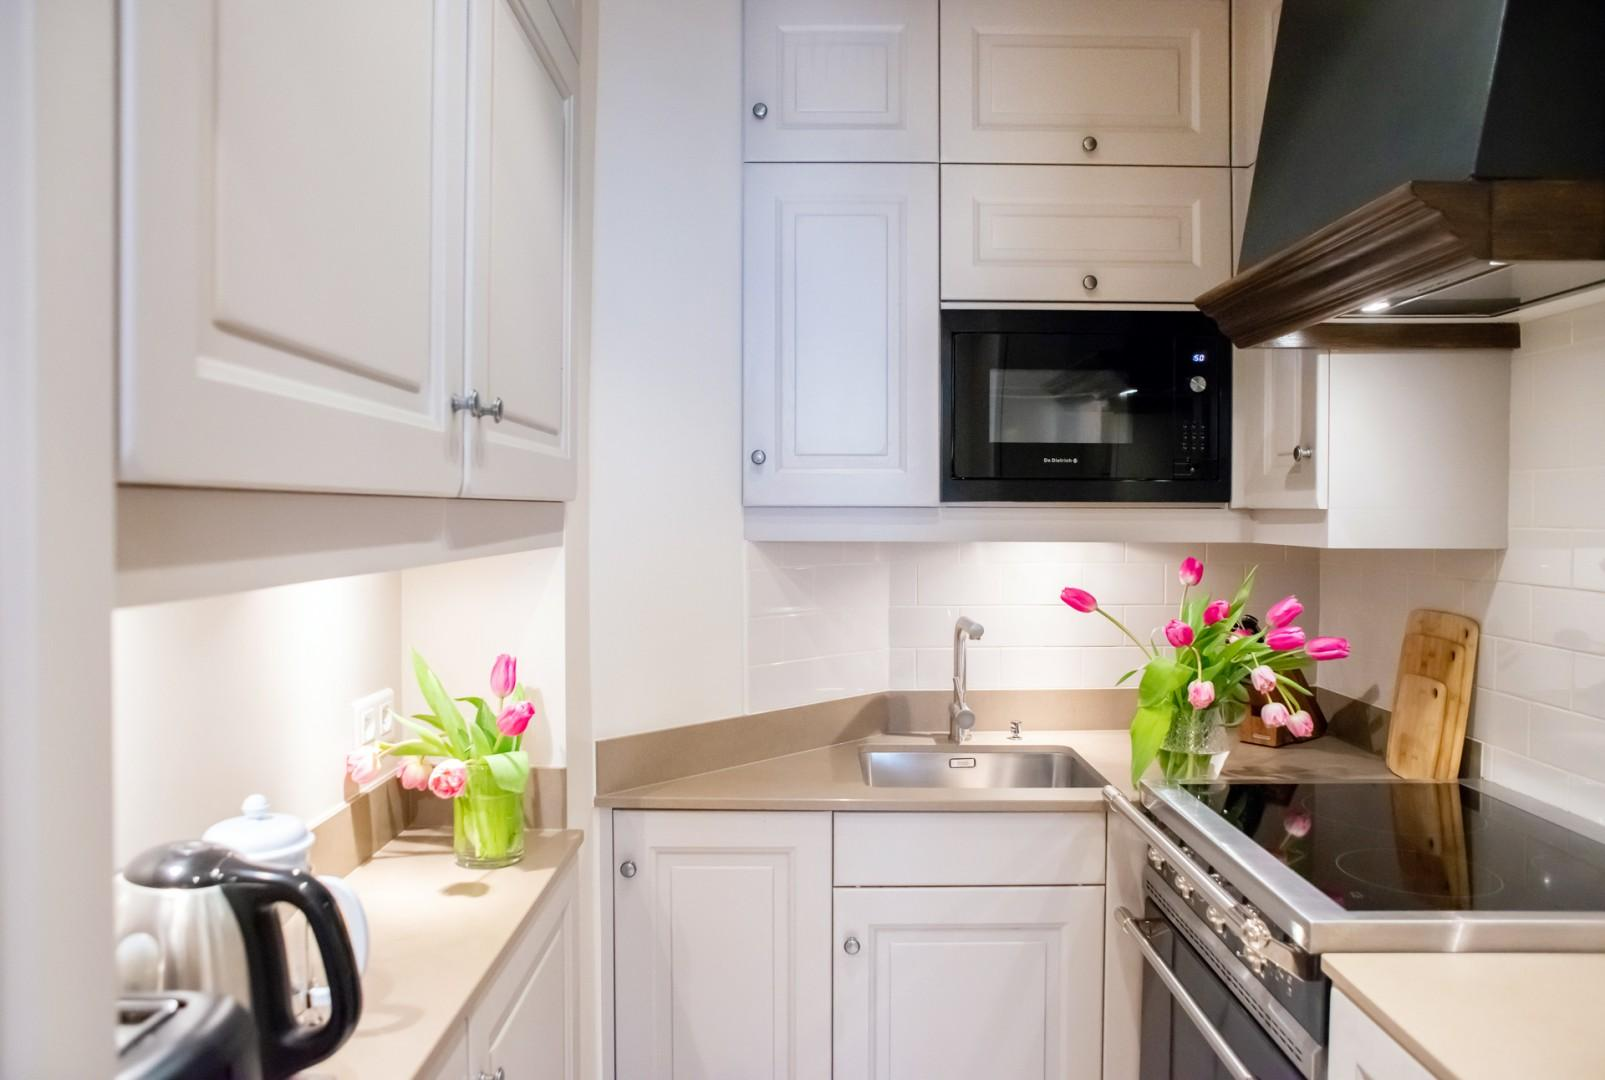 The kitchen is fully equipped for cooking at home.